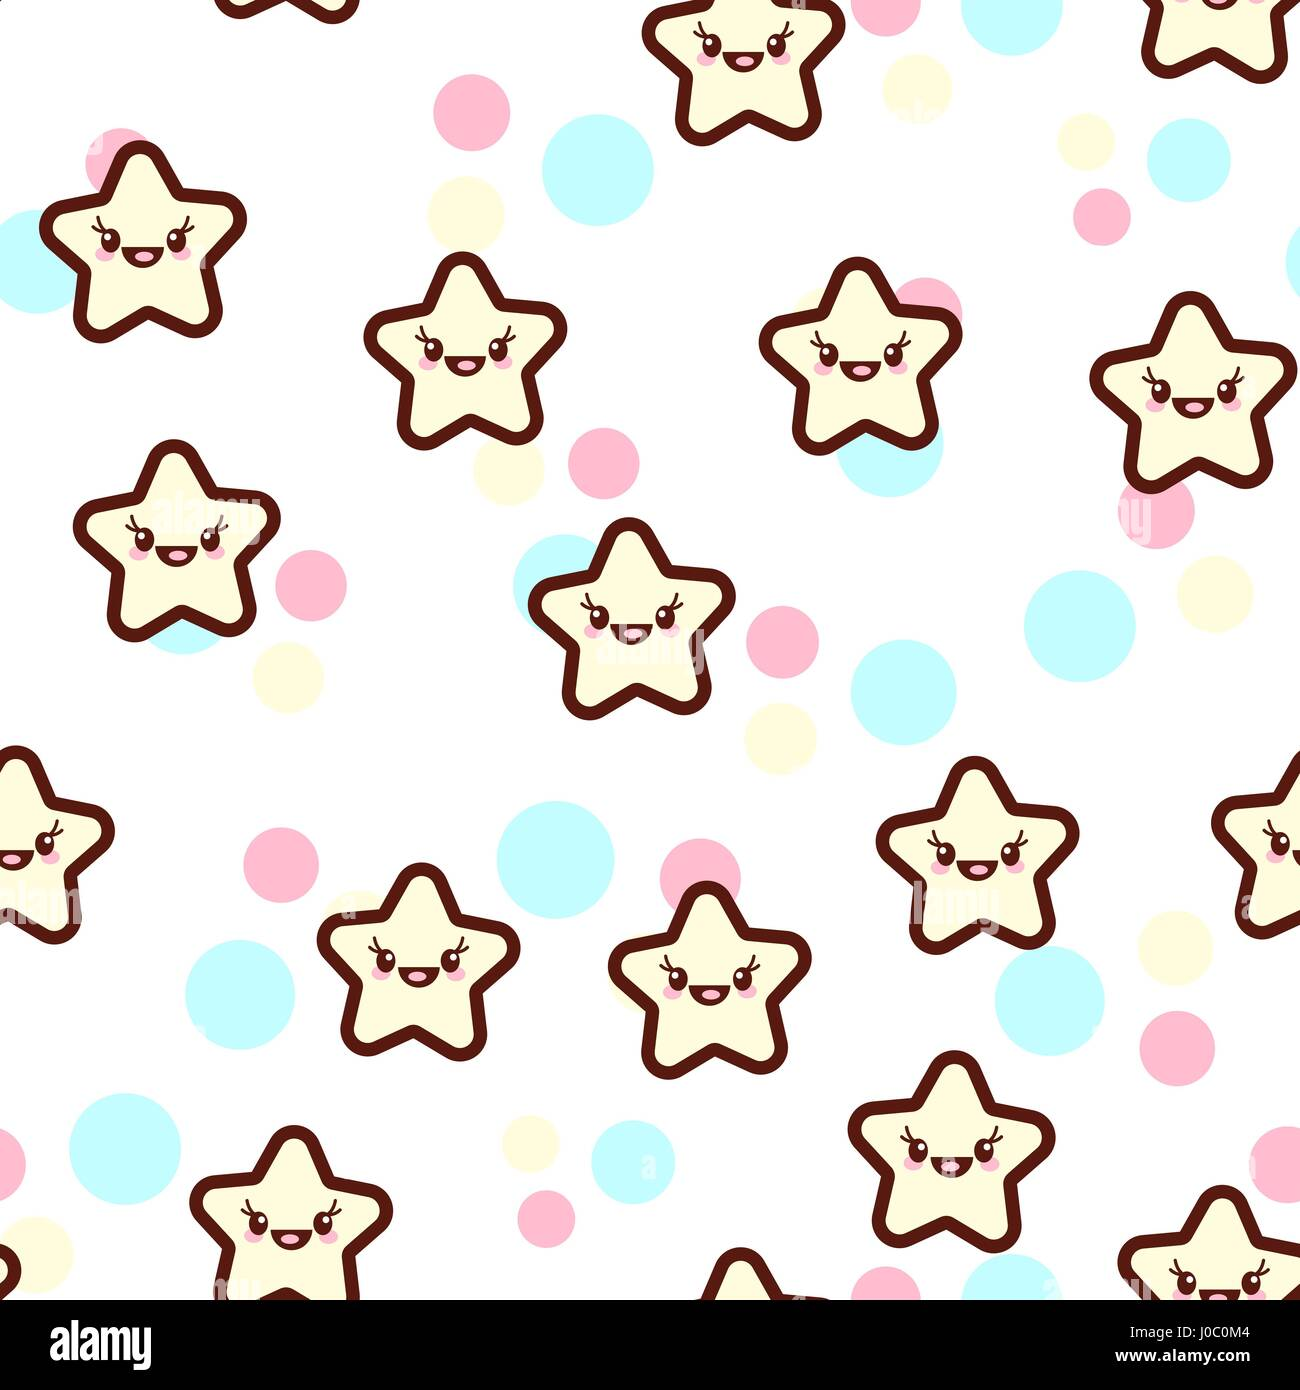 Vector illustration of the cute stars with the funny faces seamless pattern. Trendy Kawaii emoticons for print on - Stock Vector